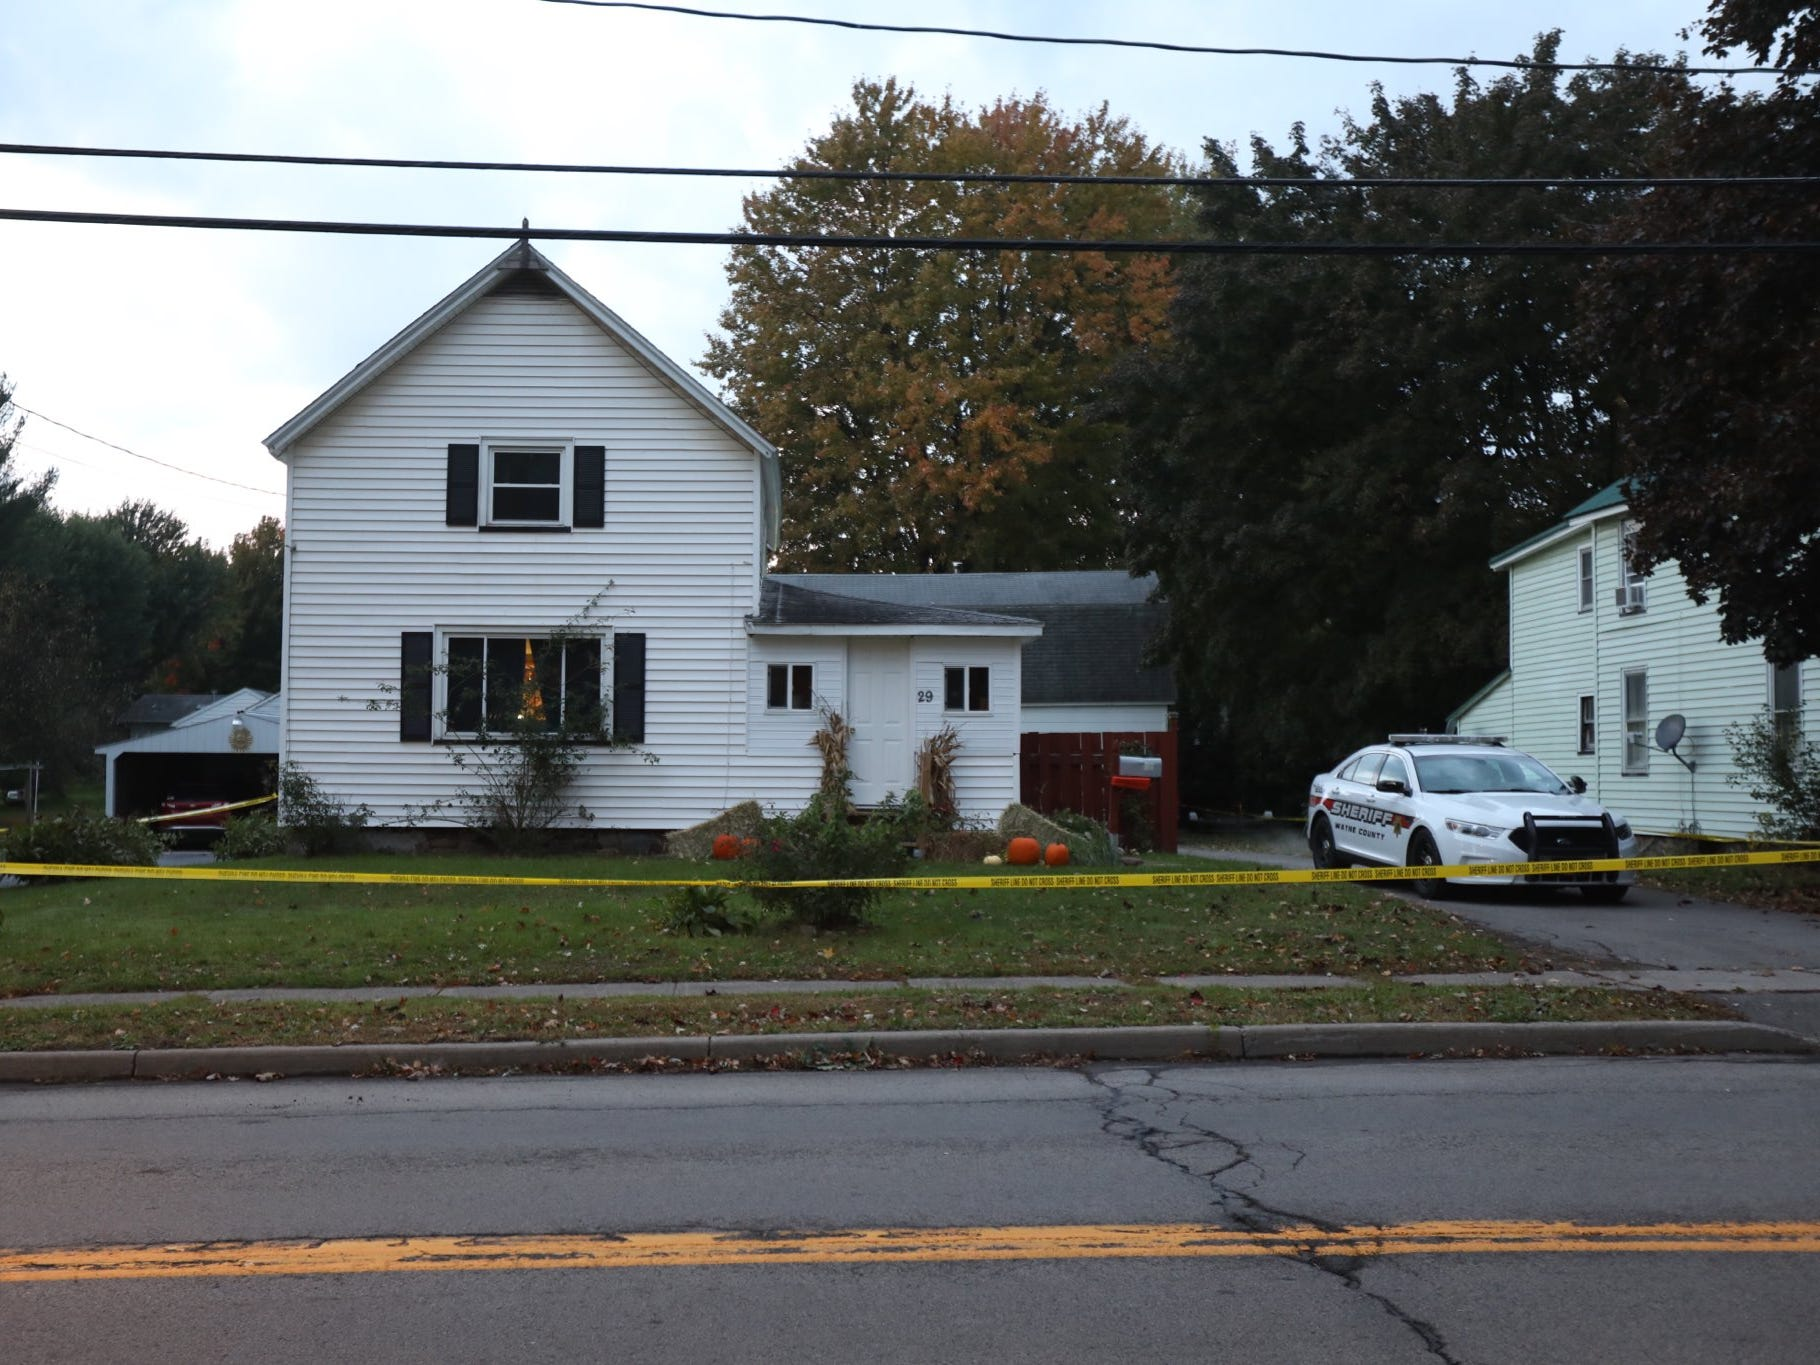 A Wayne County Sheriff's vehicle sits outside 29 Carlton St. in Sodus.